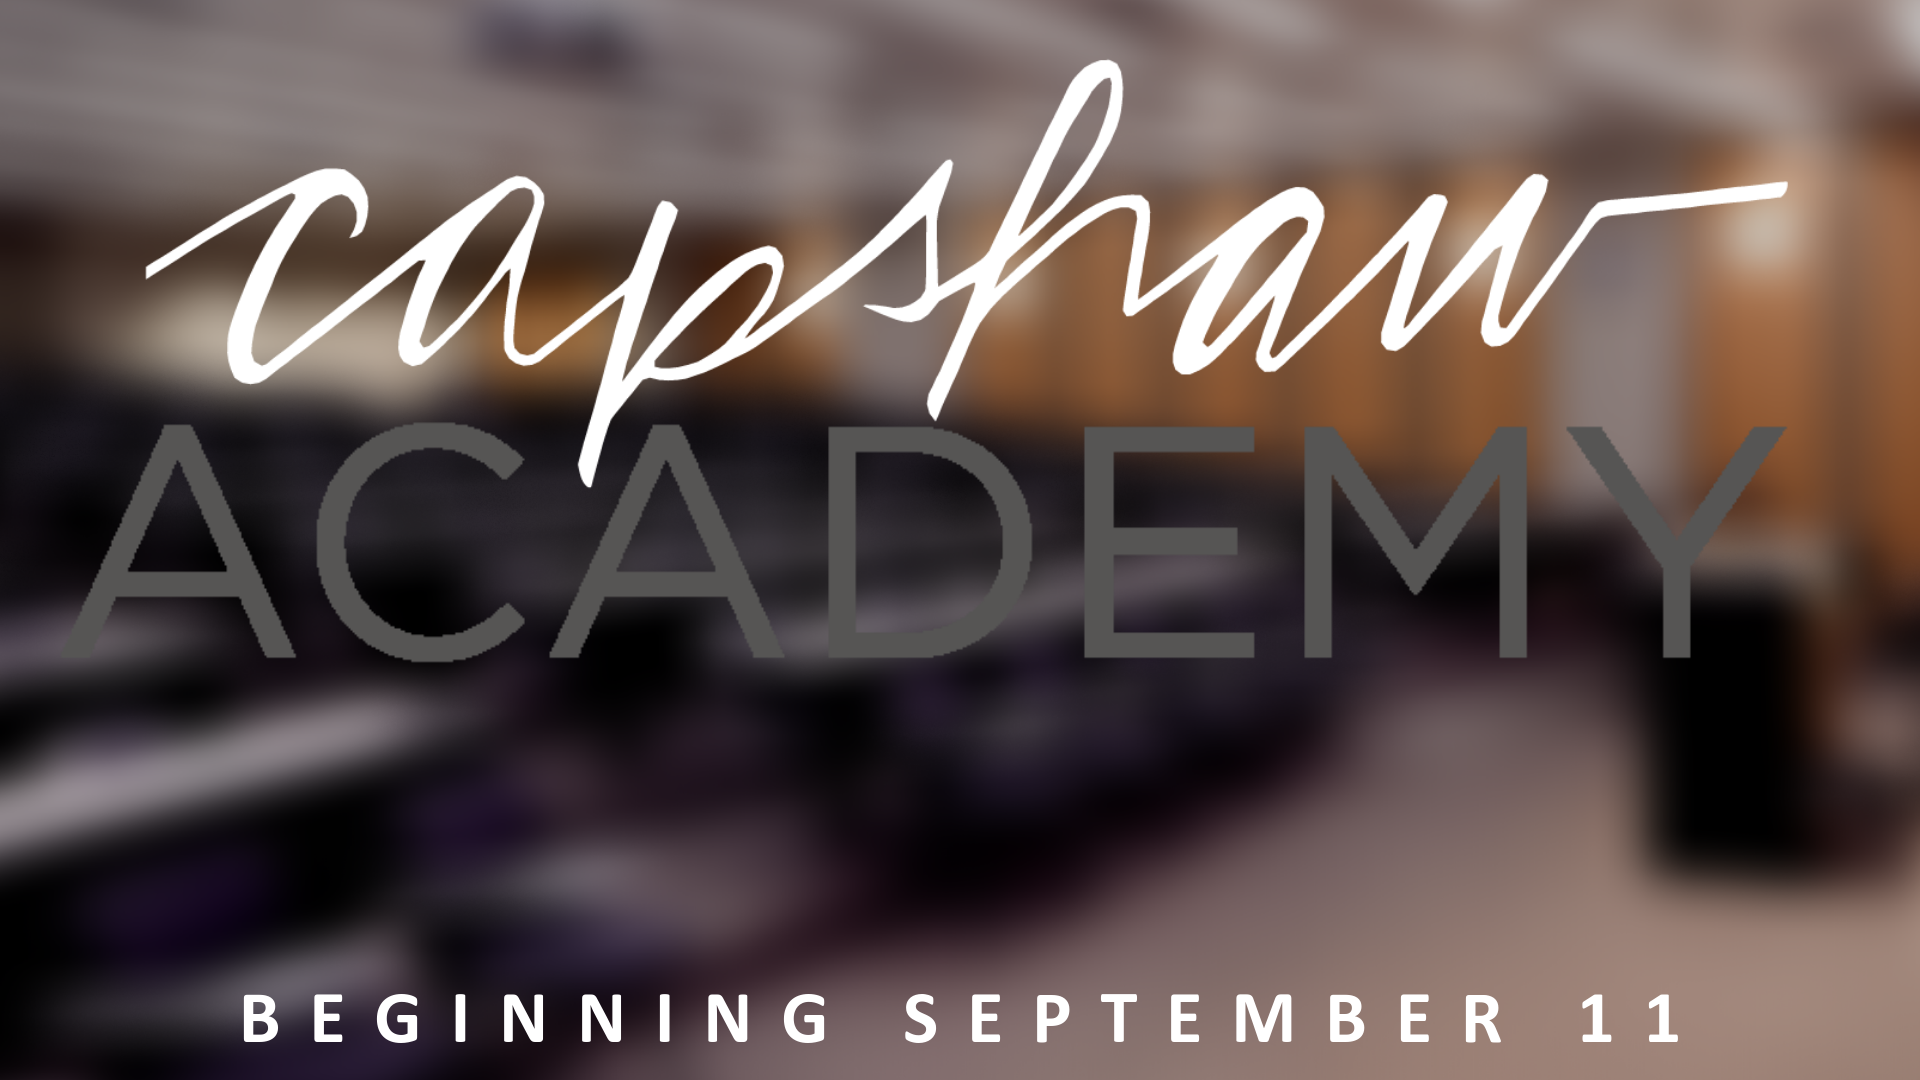 CAPSHAW academy .png